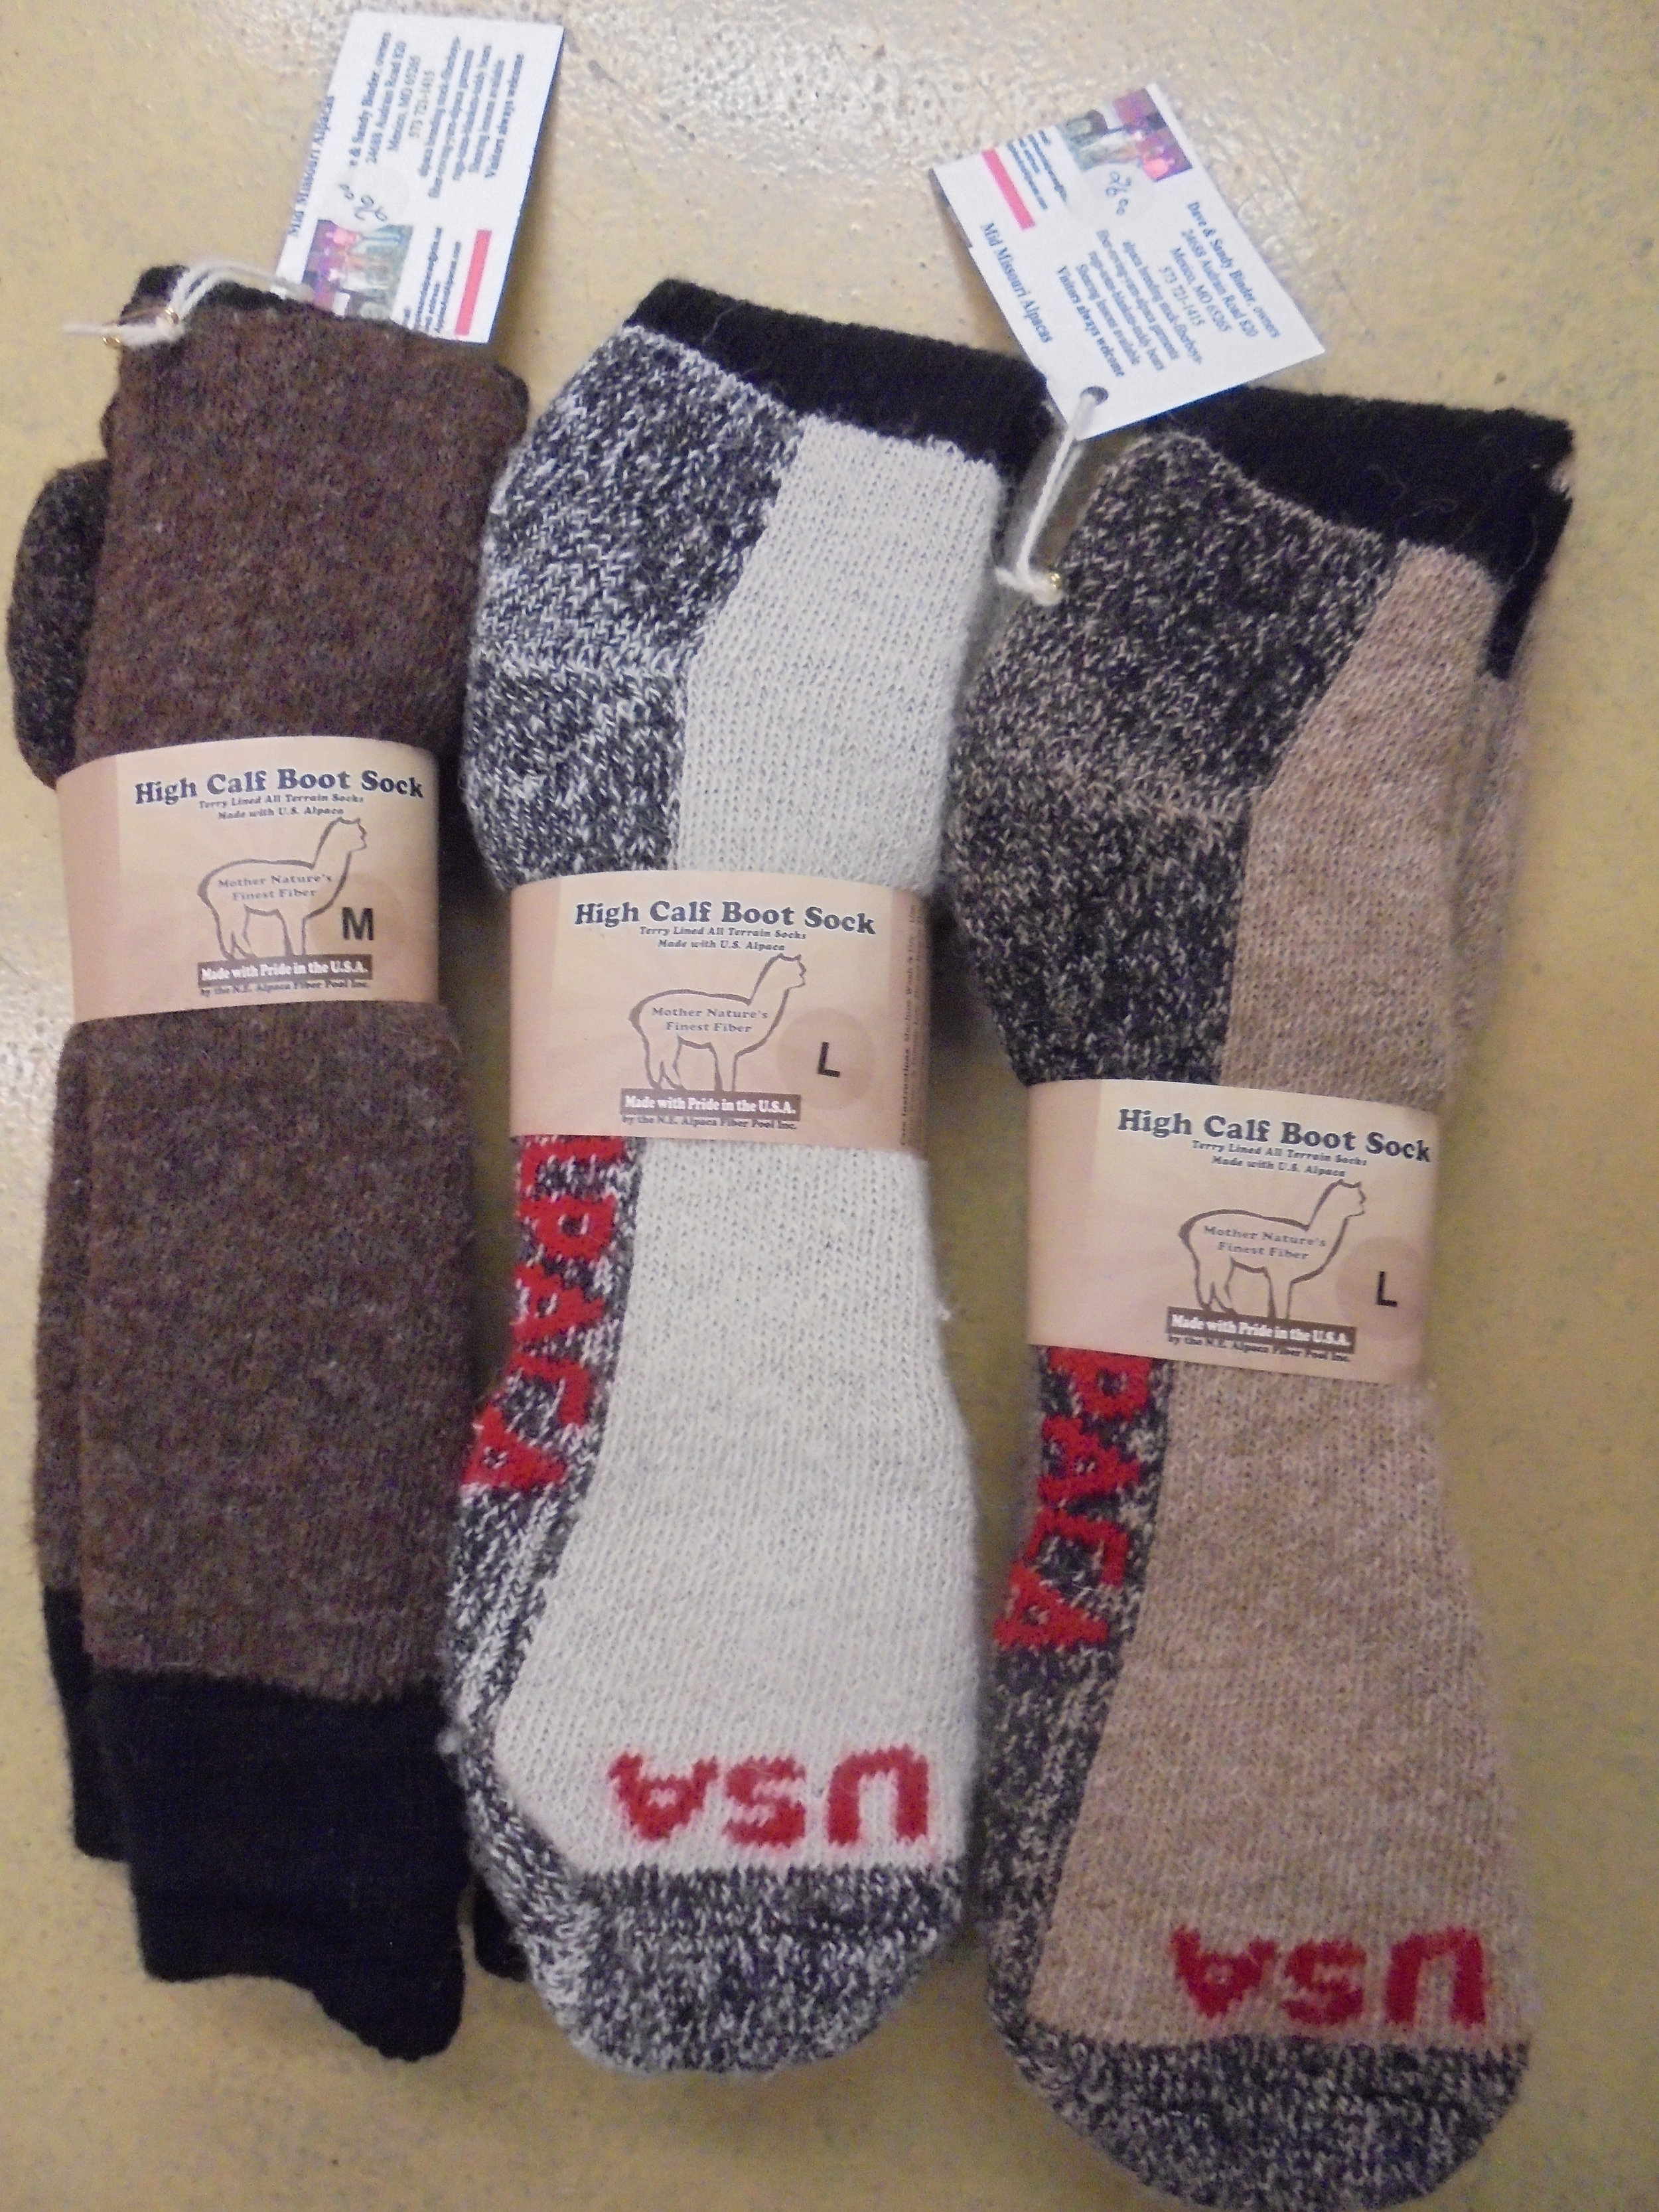 Alpaca High-Calf Boot Socks